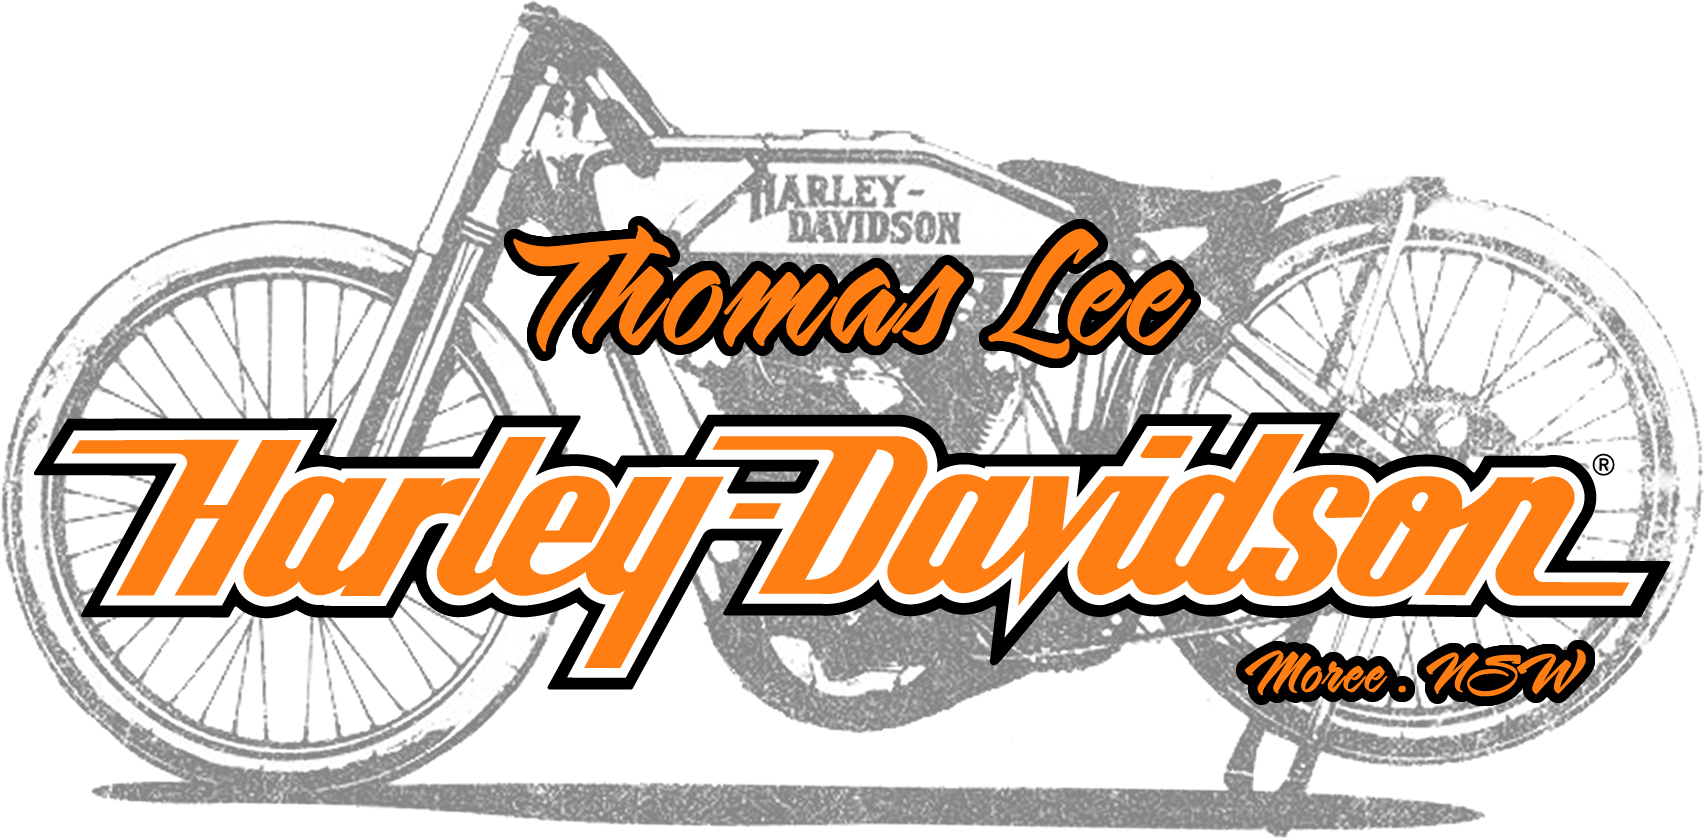 Thomas-Lee Harley-Davidson<sup>®</sup>